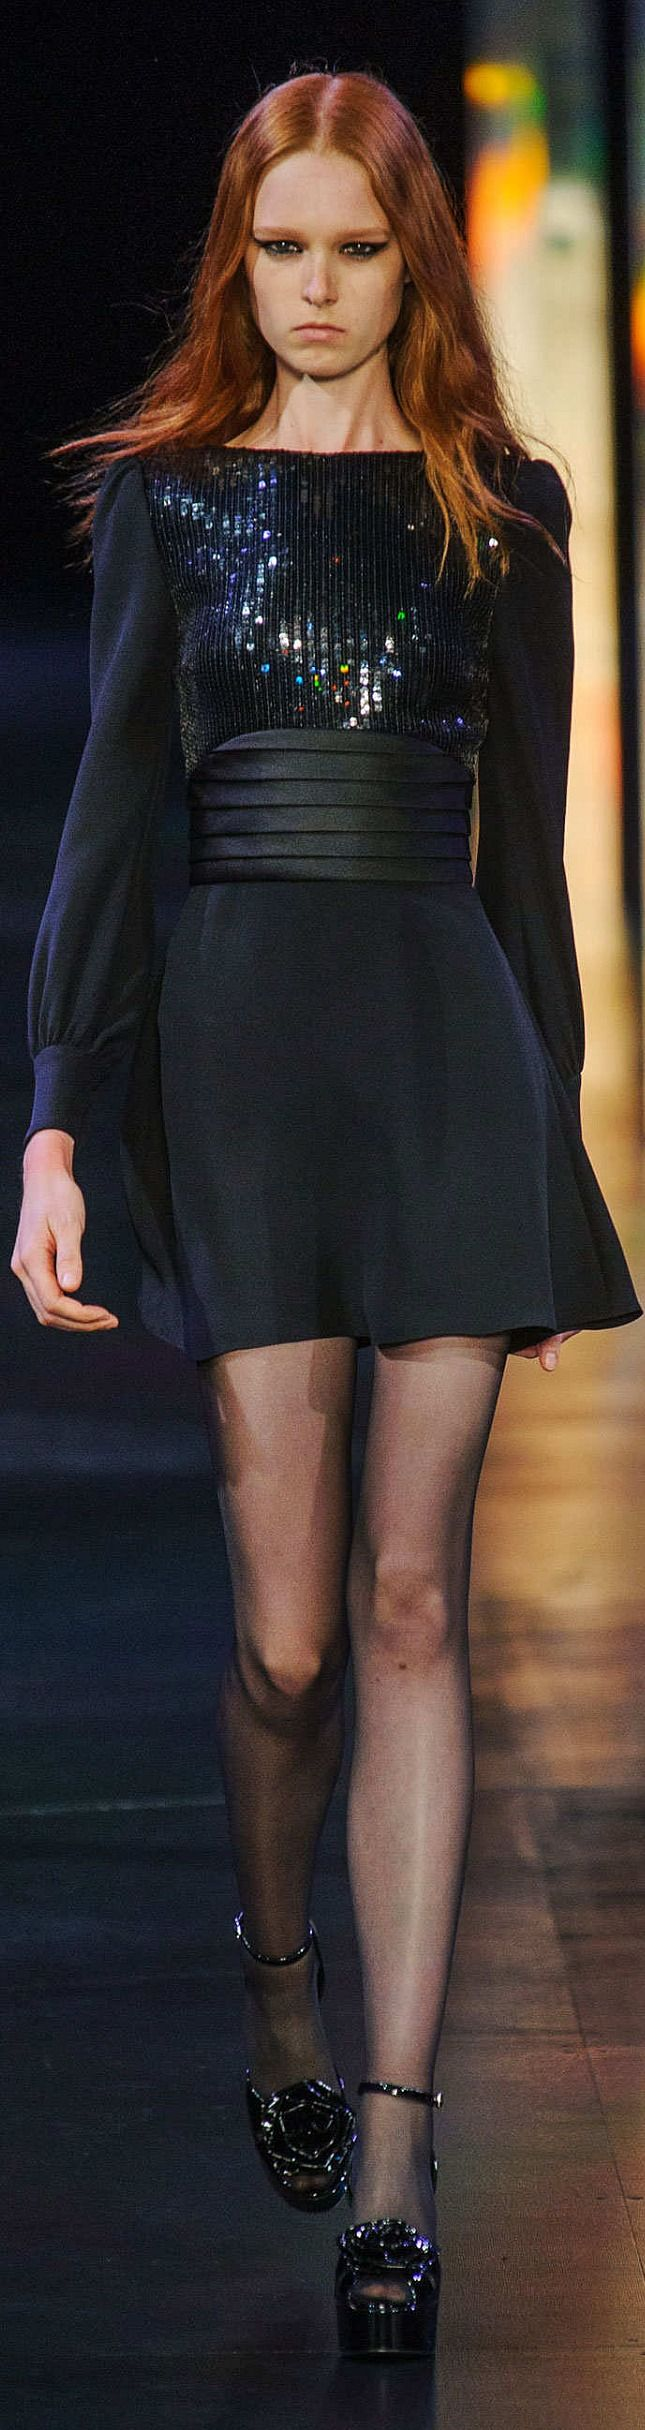 Saint Laurent Collection Spring 2015   The House of Beccaria~   Please follow along with me